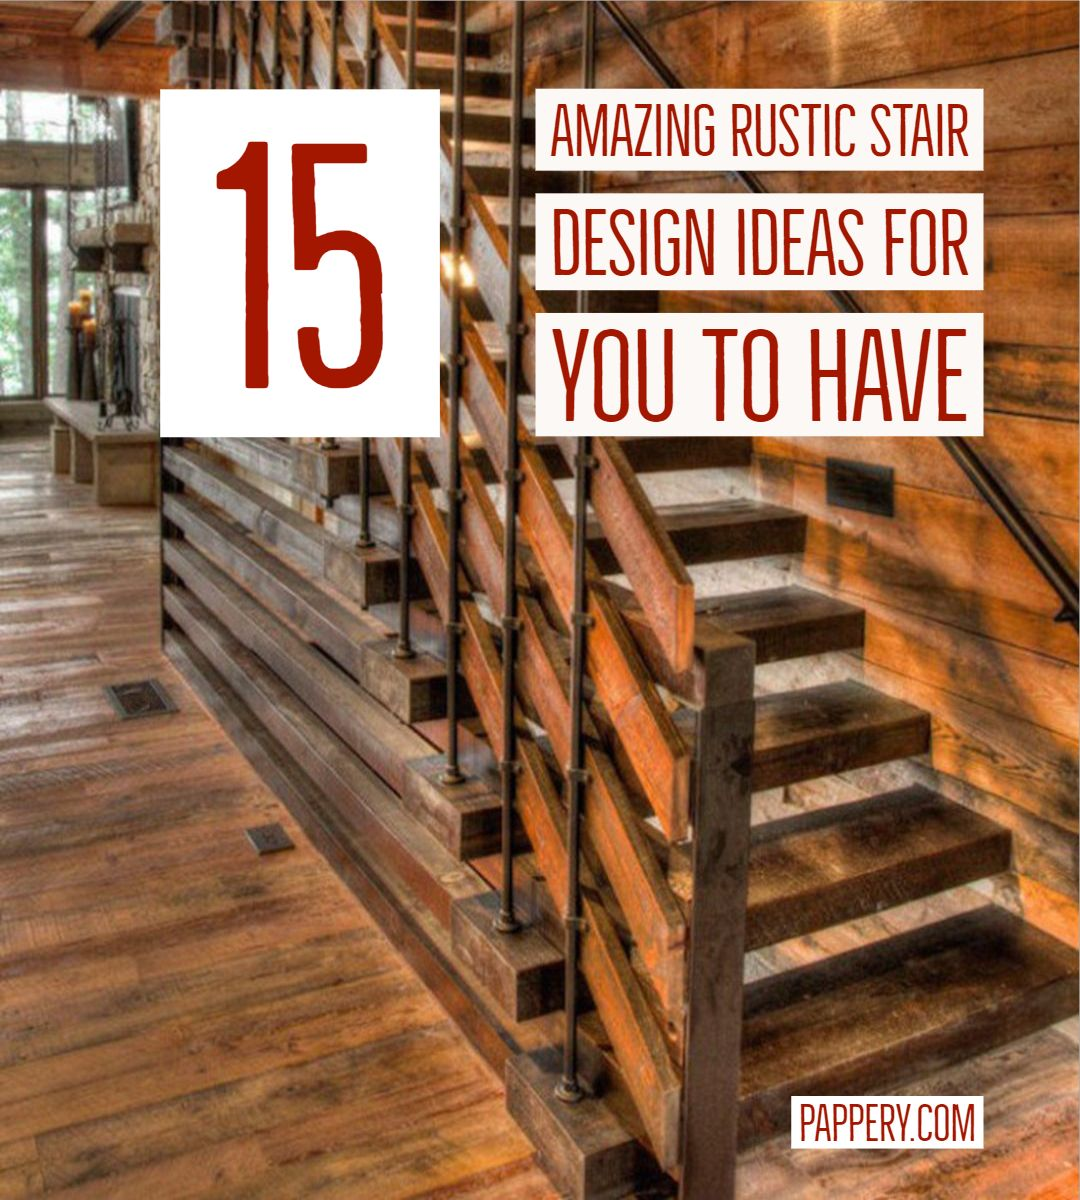 15 Incredible Mediterranean Staircase Designs That Will: Top 15 Amazing Rustic Stair Design Ideas For You To Have